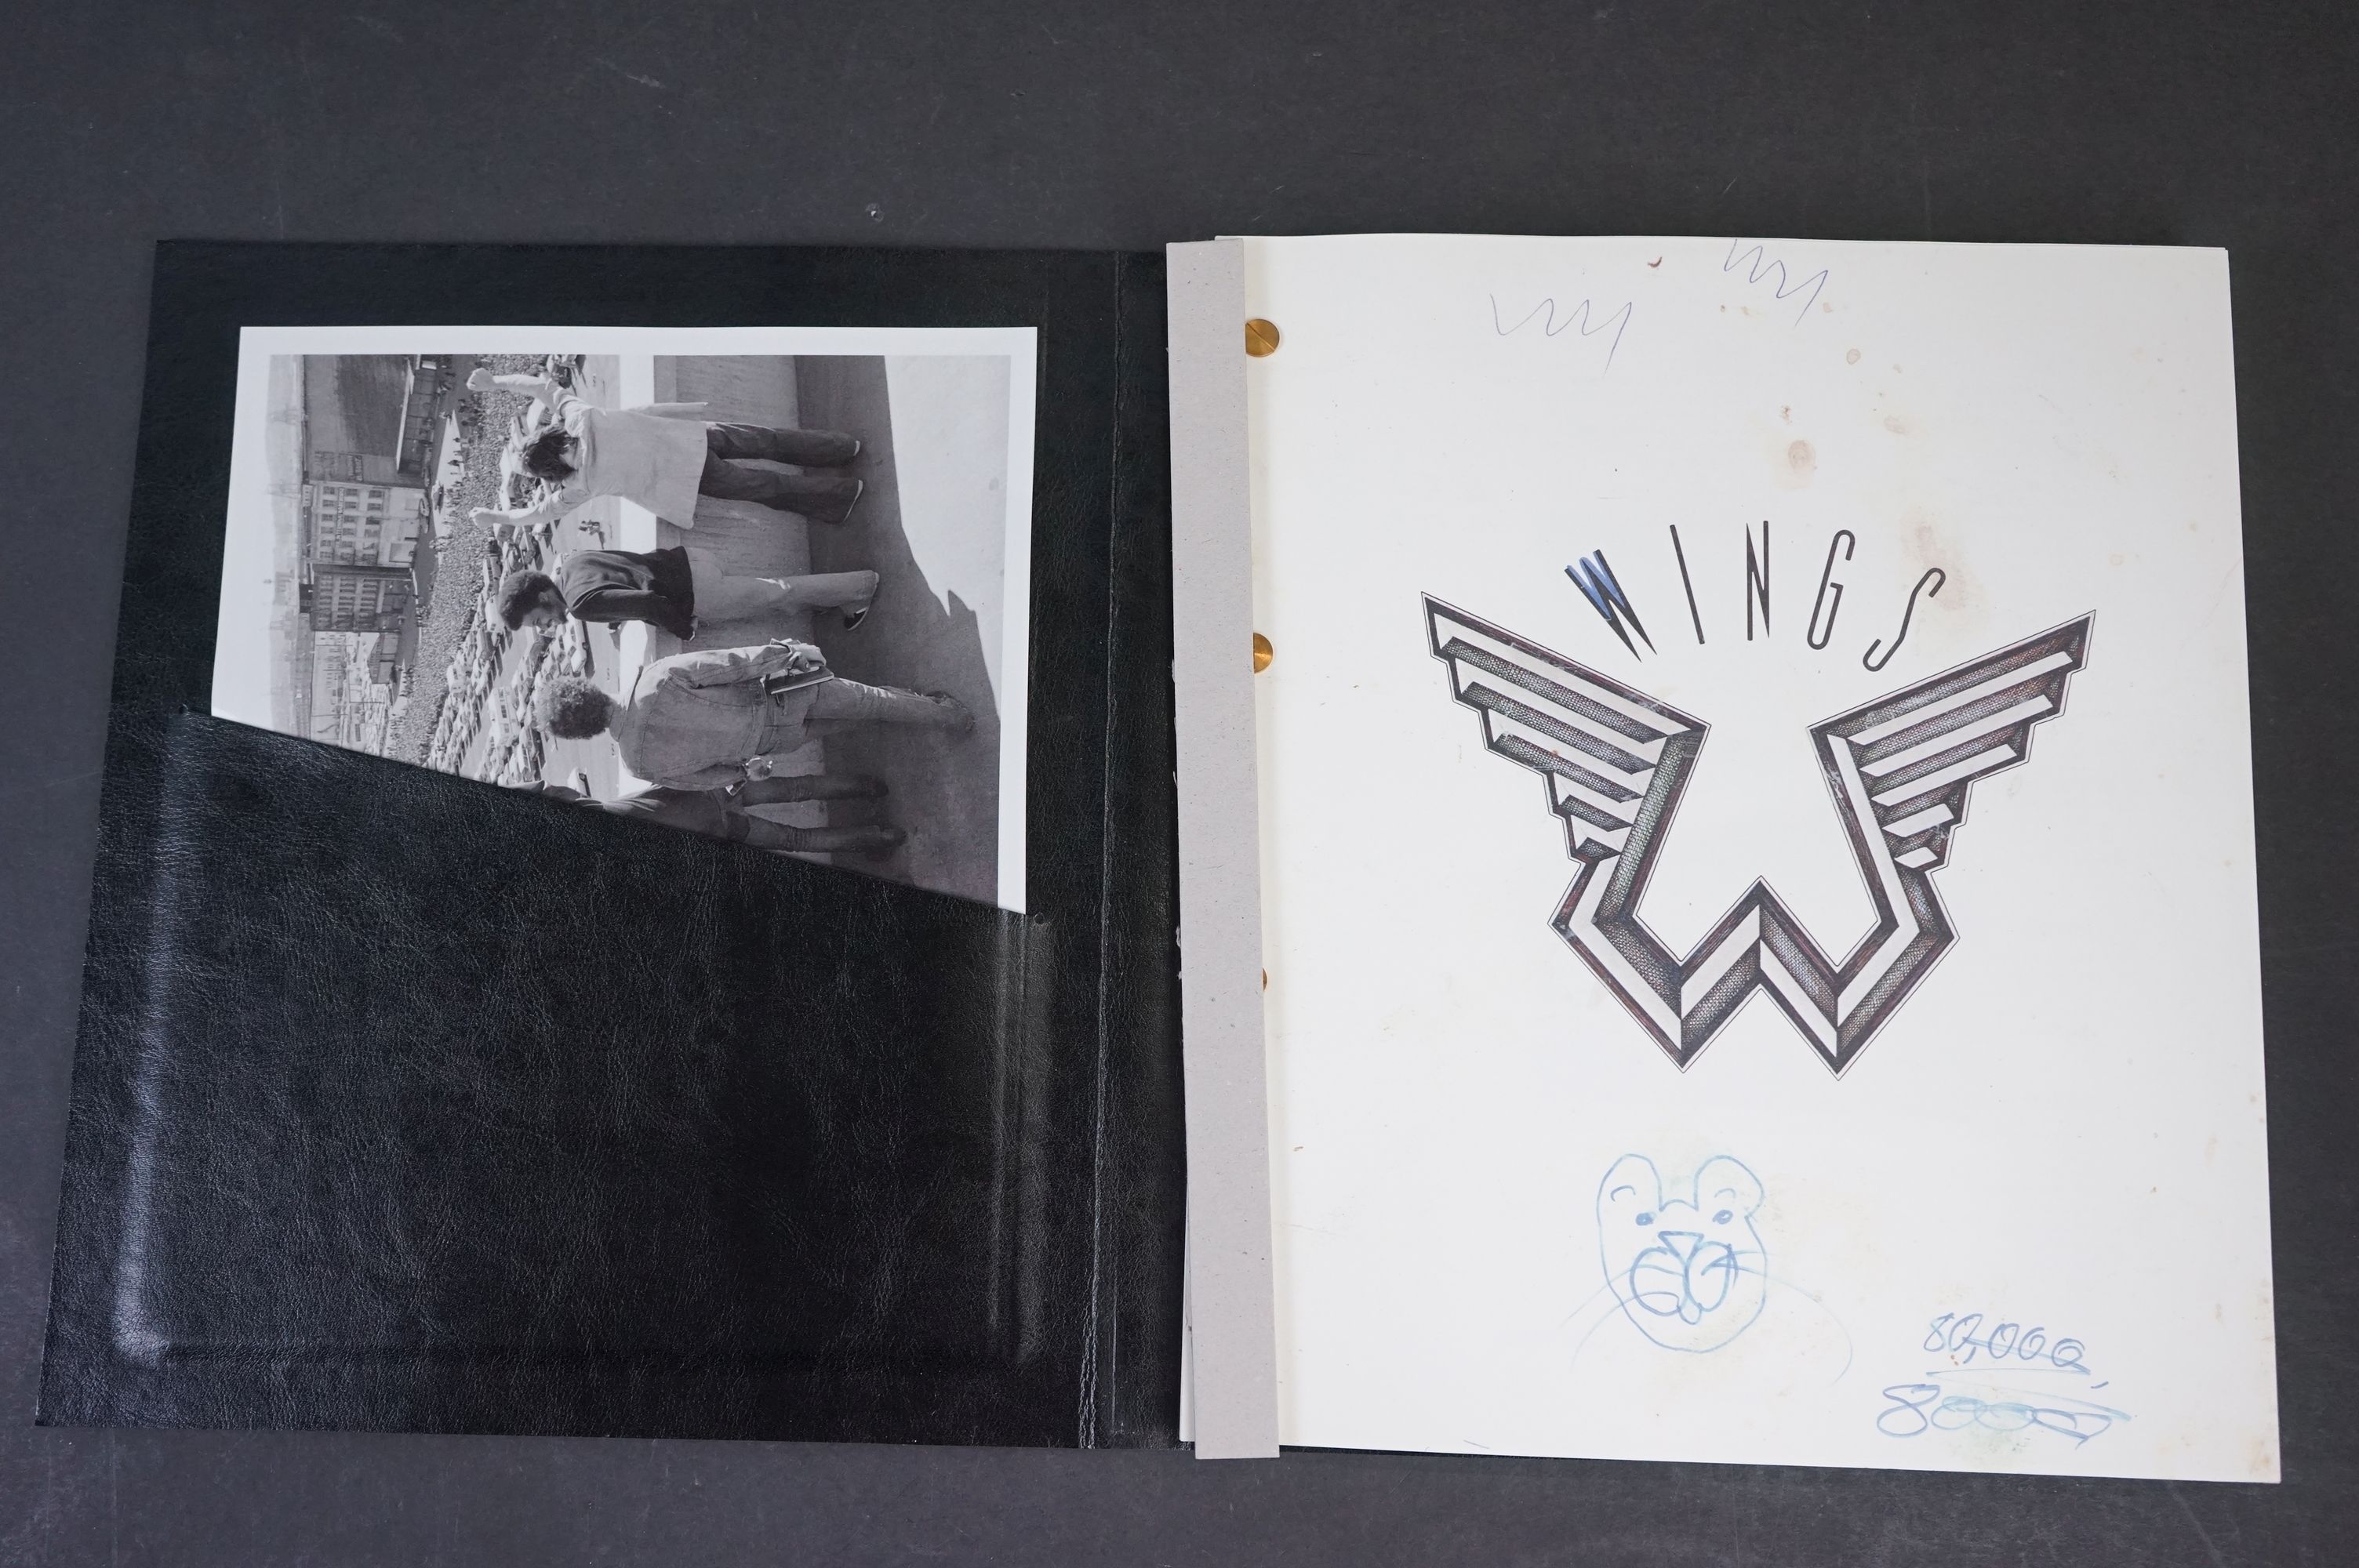 Box Set - Paul McCartney & Wings - Wings Over America numbered box set (03555) deluxe box set, ex - Image 3 of 18